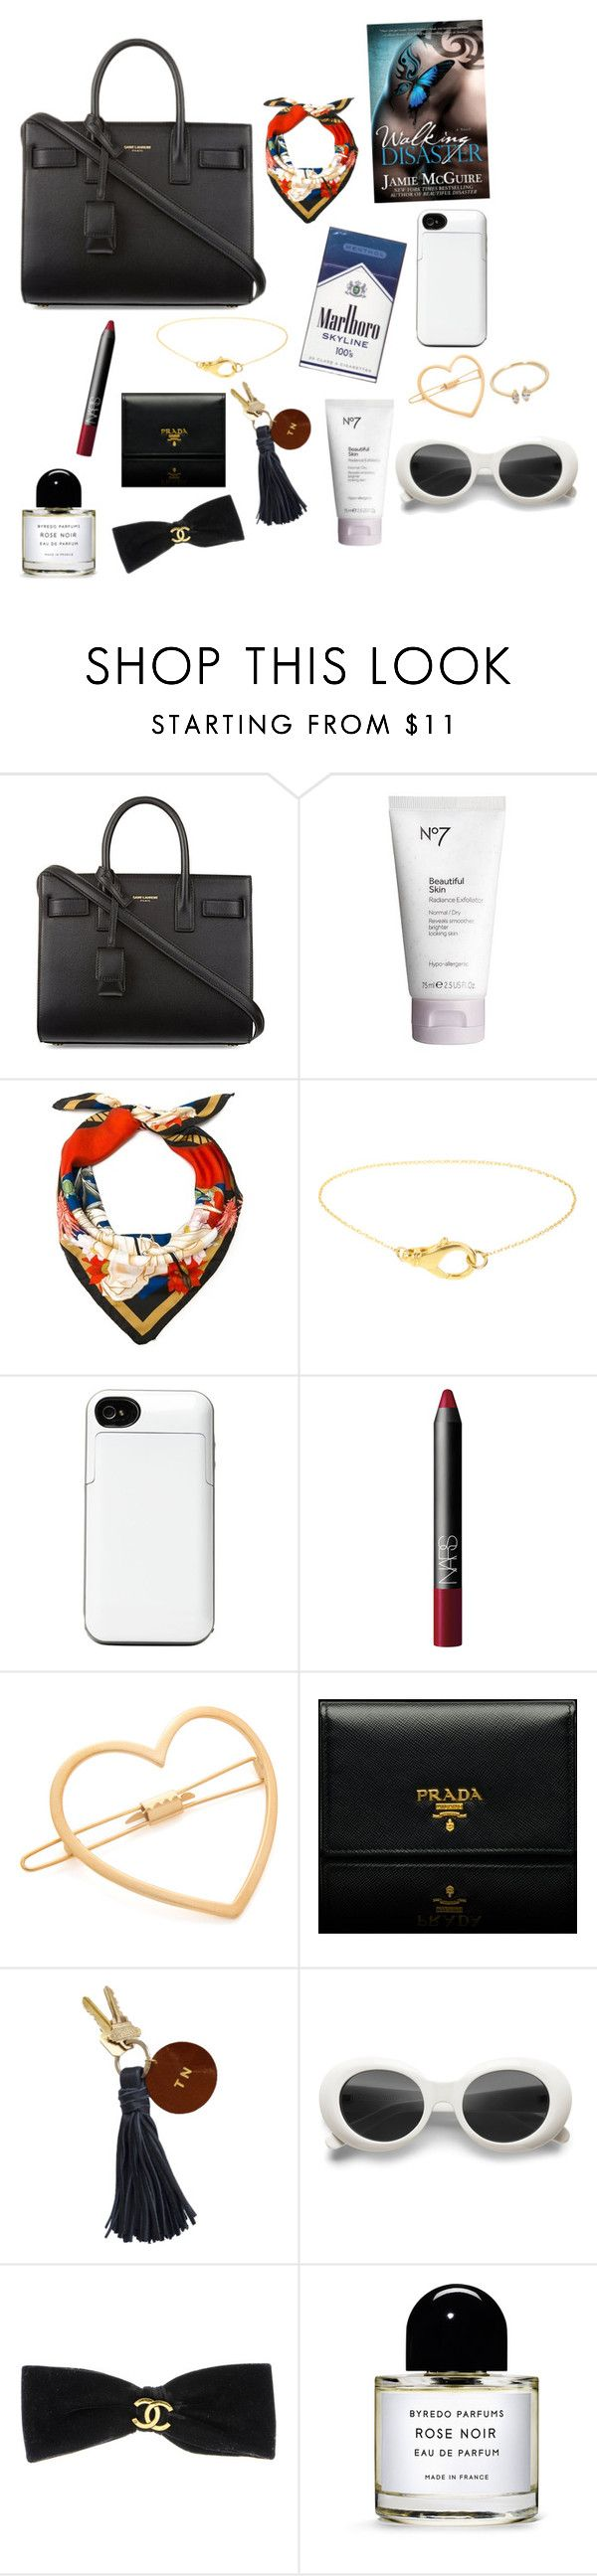 """tote"" by imimidoll ❤ liked on Polyvore featuring Yves Saint Laurent, Boots No7, St. Piece, Quiksilver, NARS Cosmetics, Mrs. President & Co., Prada, Chanel, Byredo and Loren Stewart"